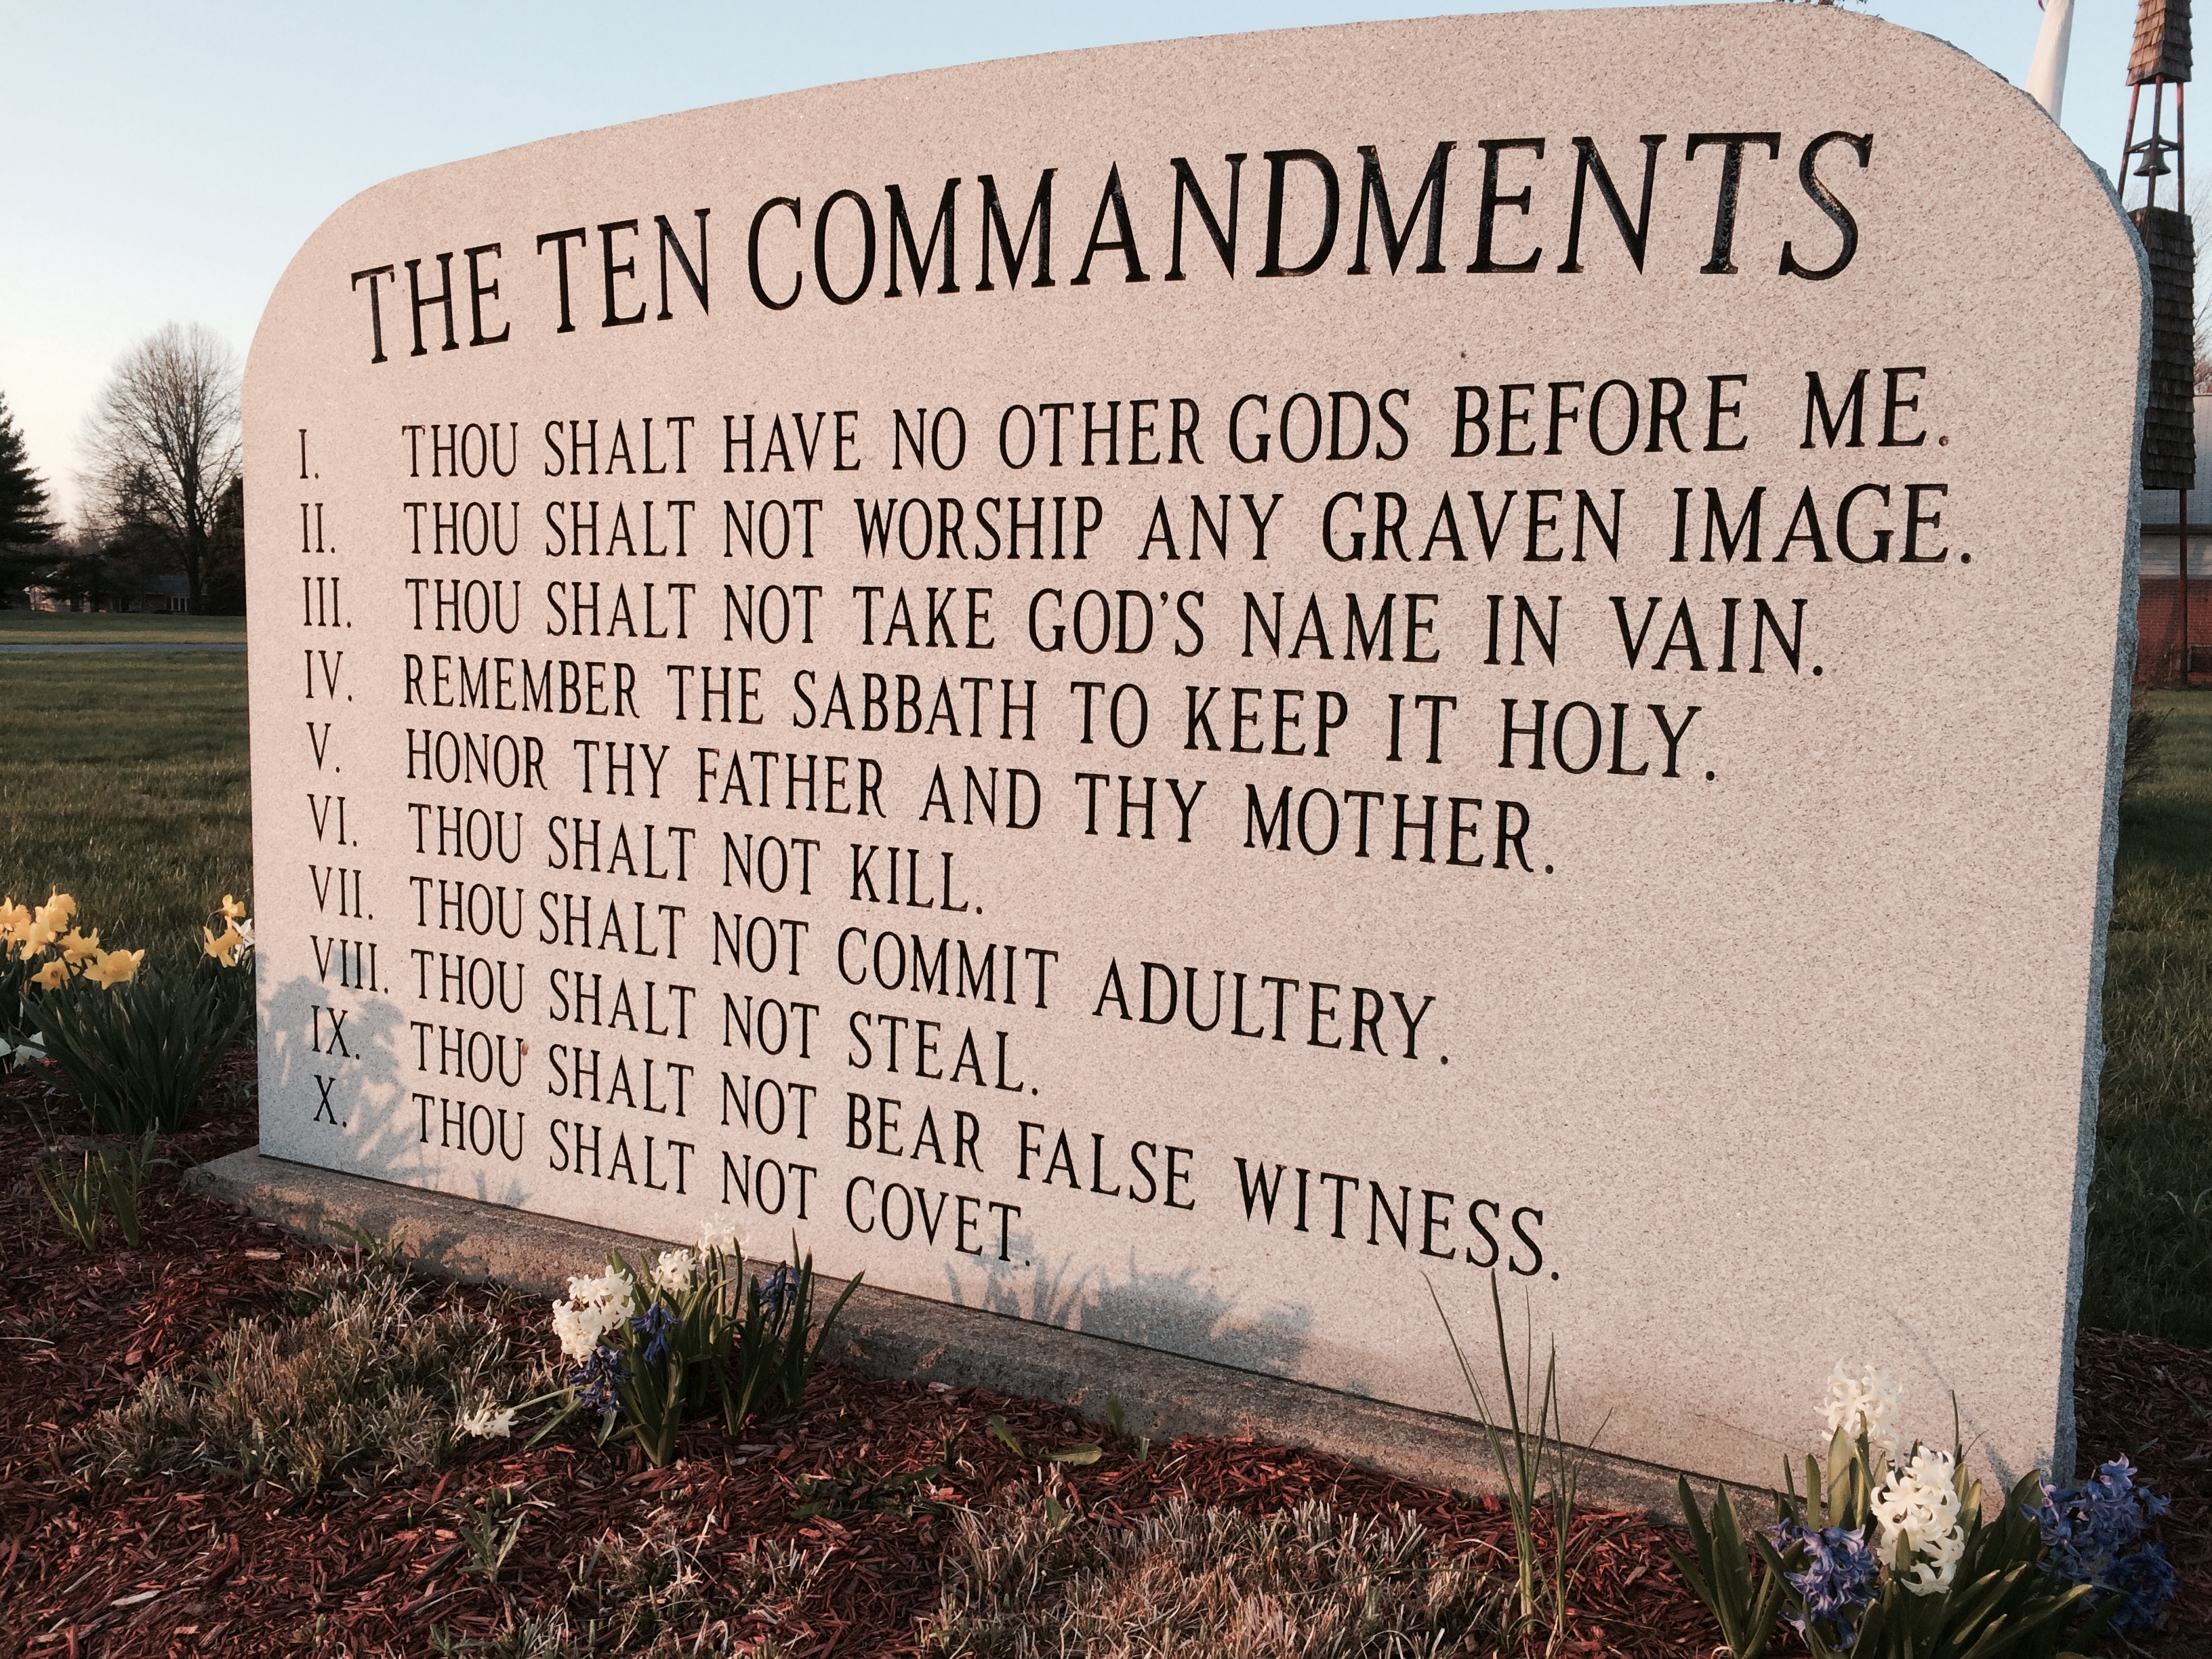 Ala Senate Approves Ten Commandments Display Bill